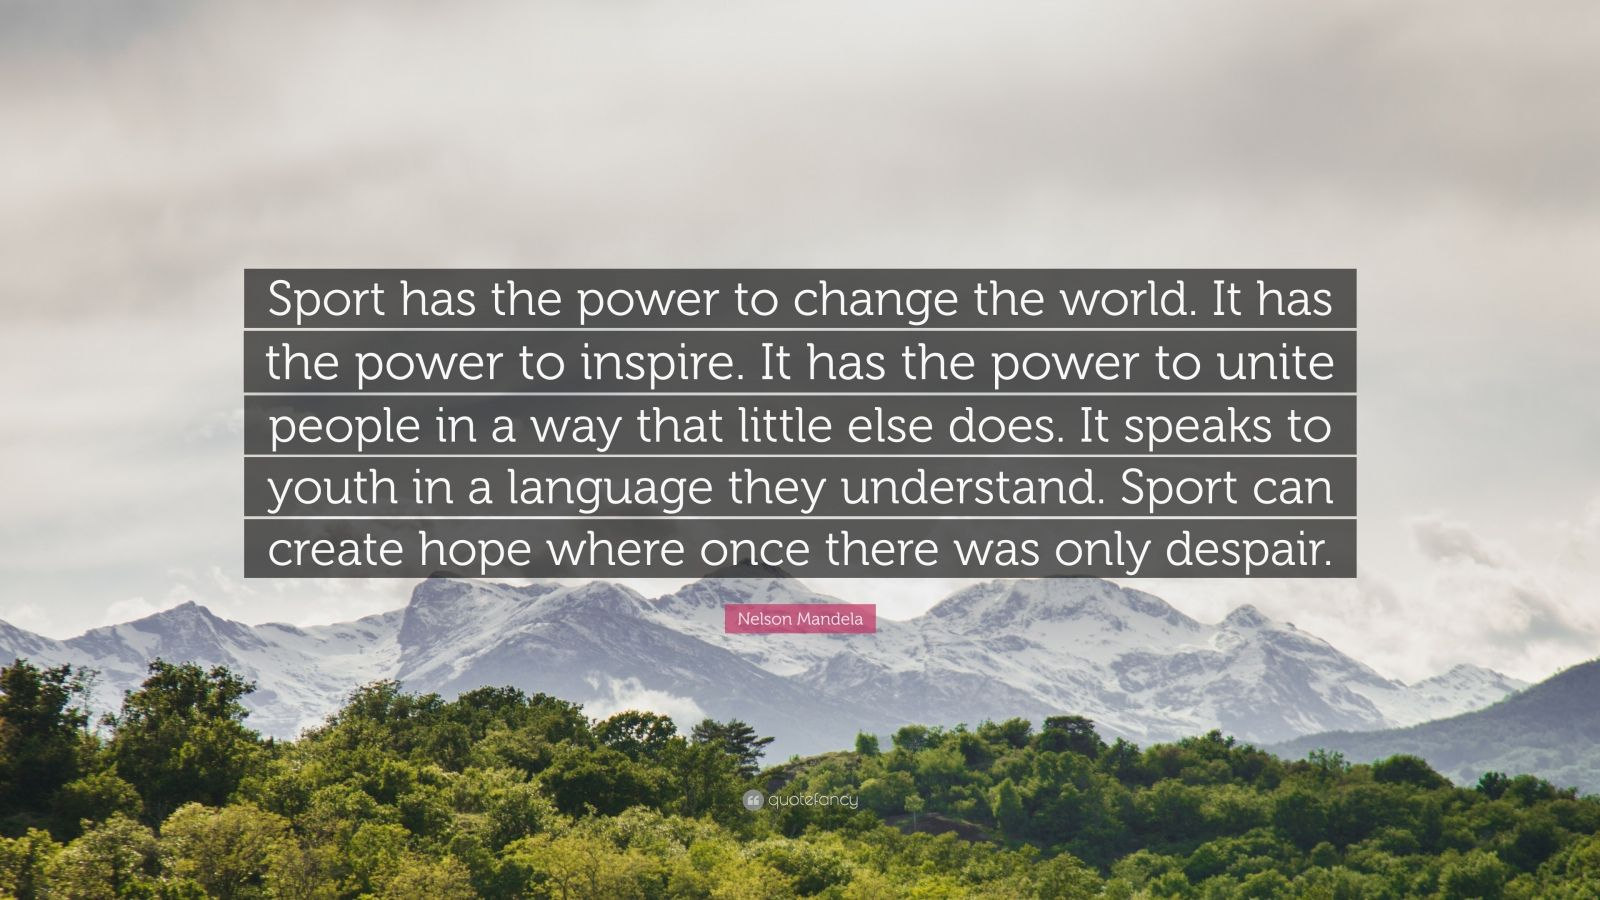 "Nelson Mandela Quote: ""Sport has the power to change the world. It has the power to inspire. It has the power to unite people in a way that little else does. It speaks to youth in a language they understand. Sport can create hope where once there was only despair."""